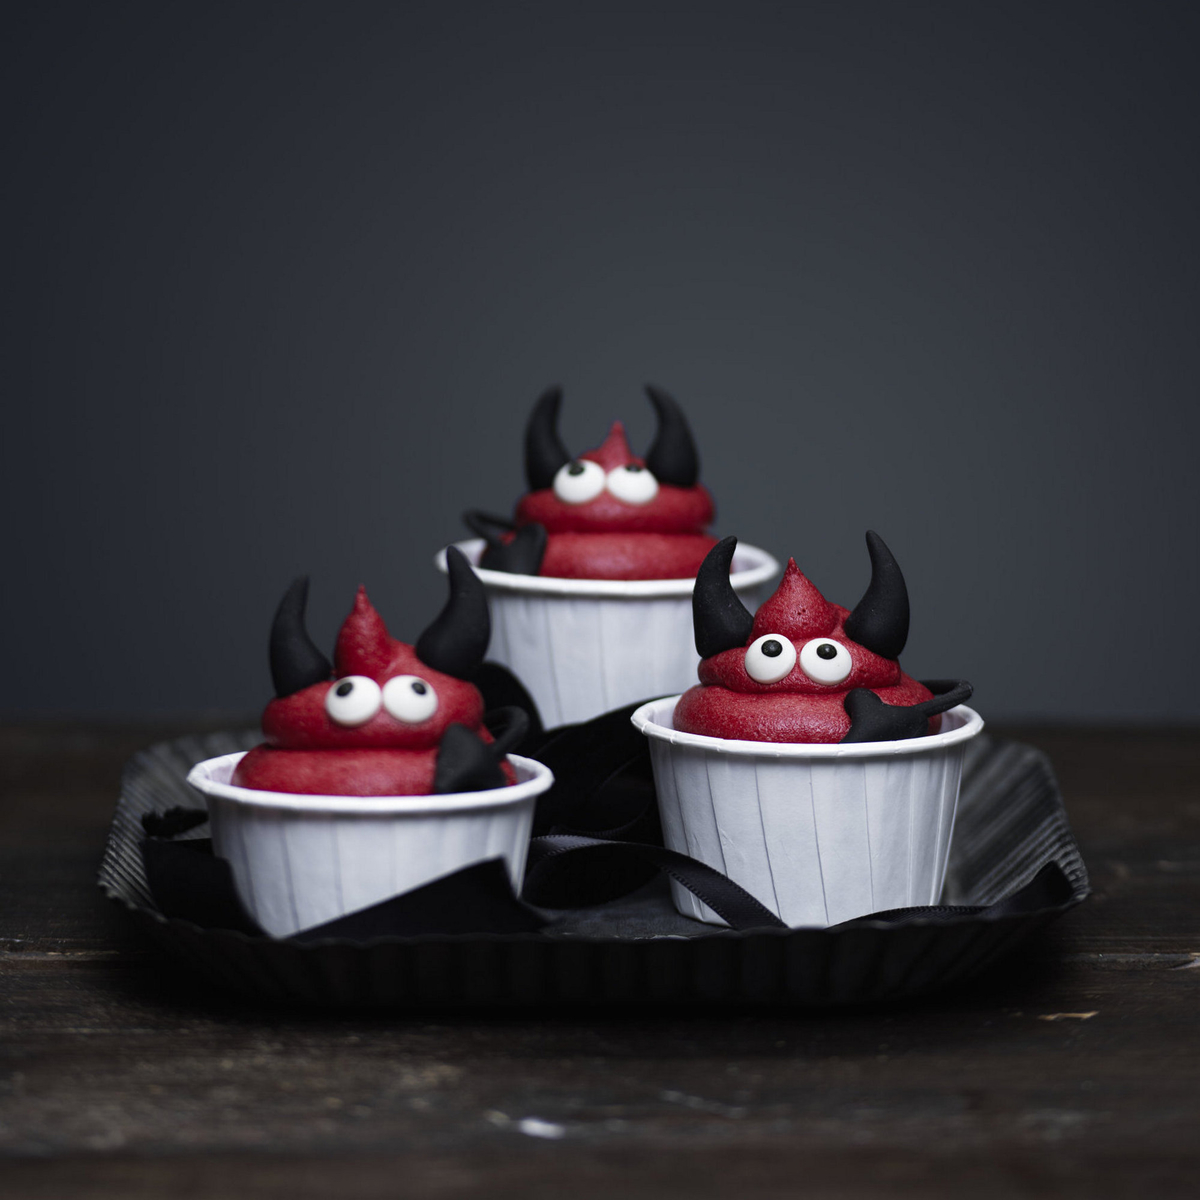 Serve up a dish of little devils